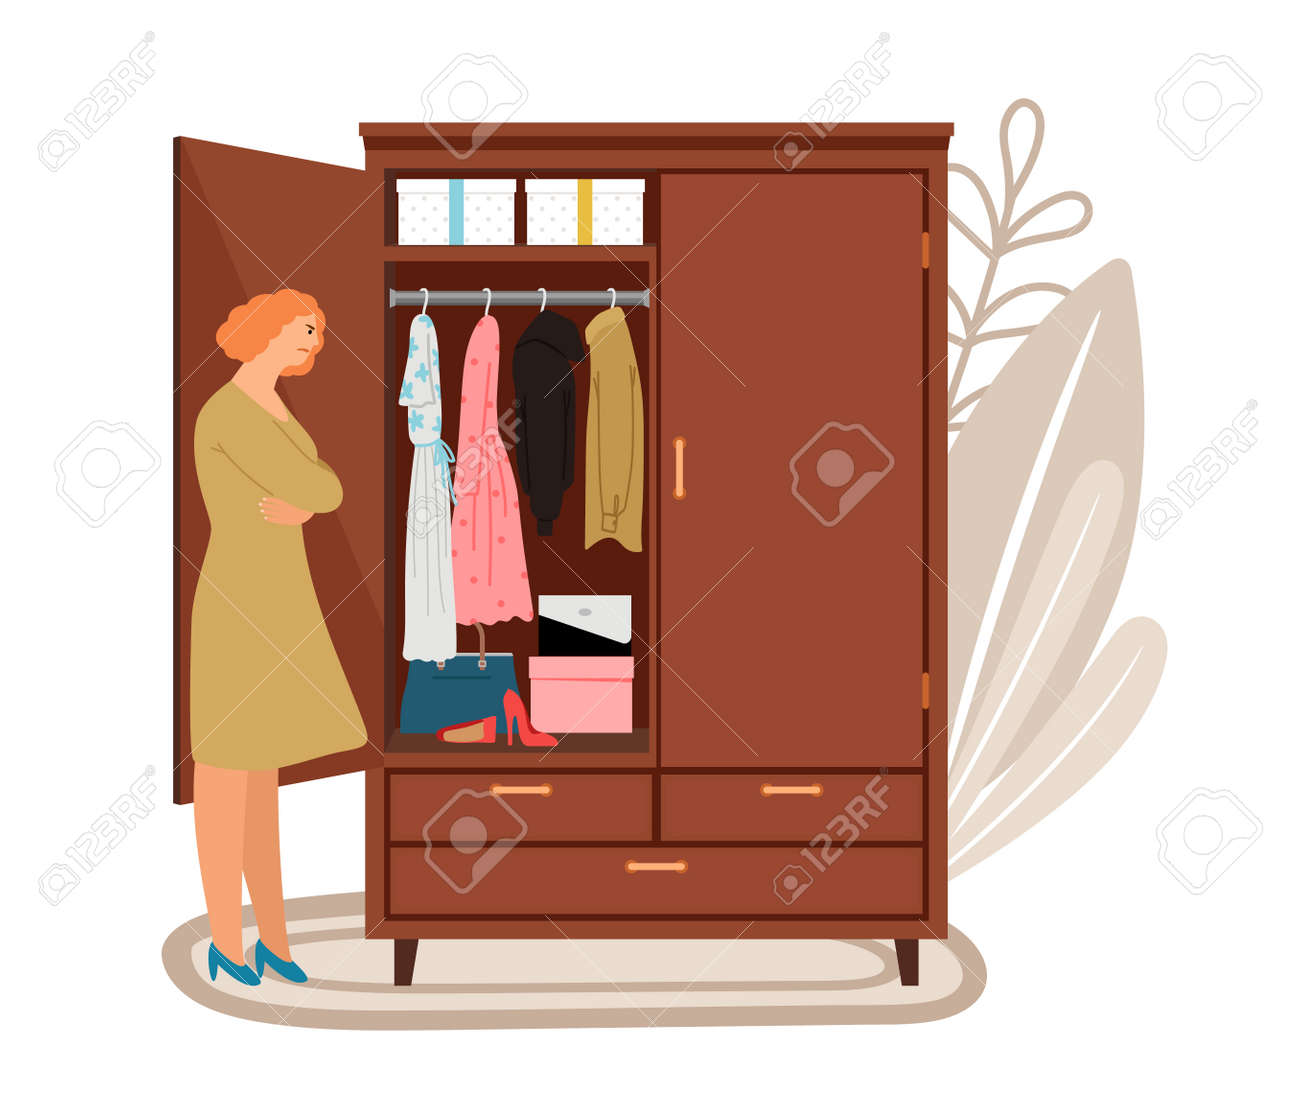 Woman and open wardrope - 171257149